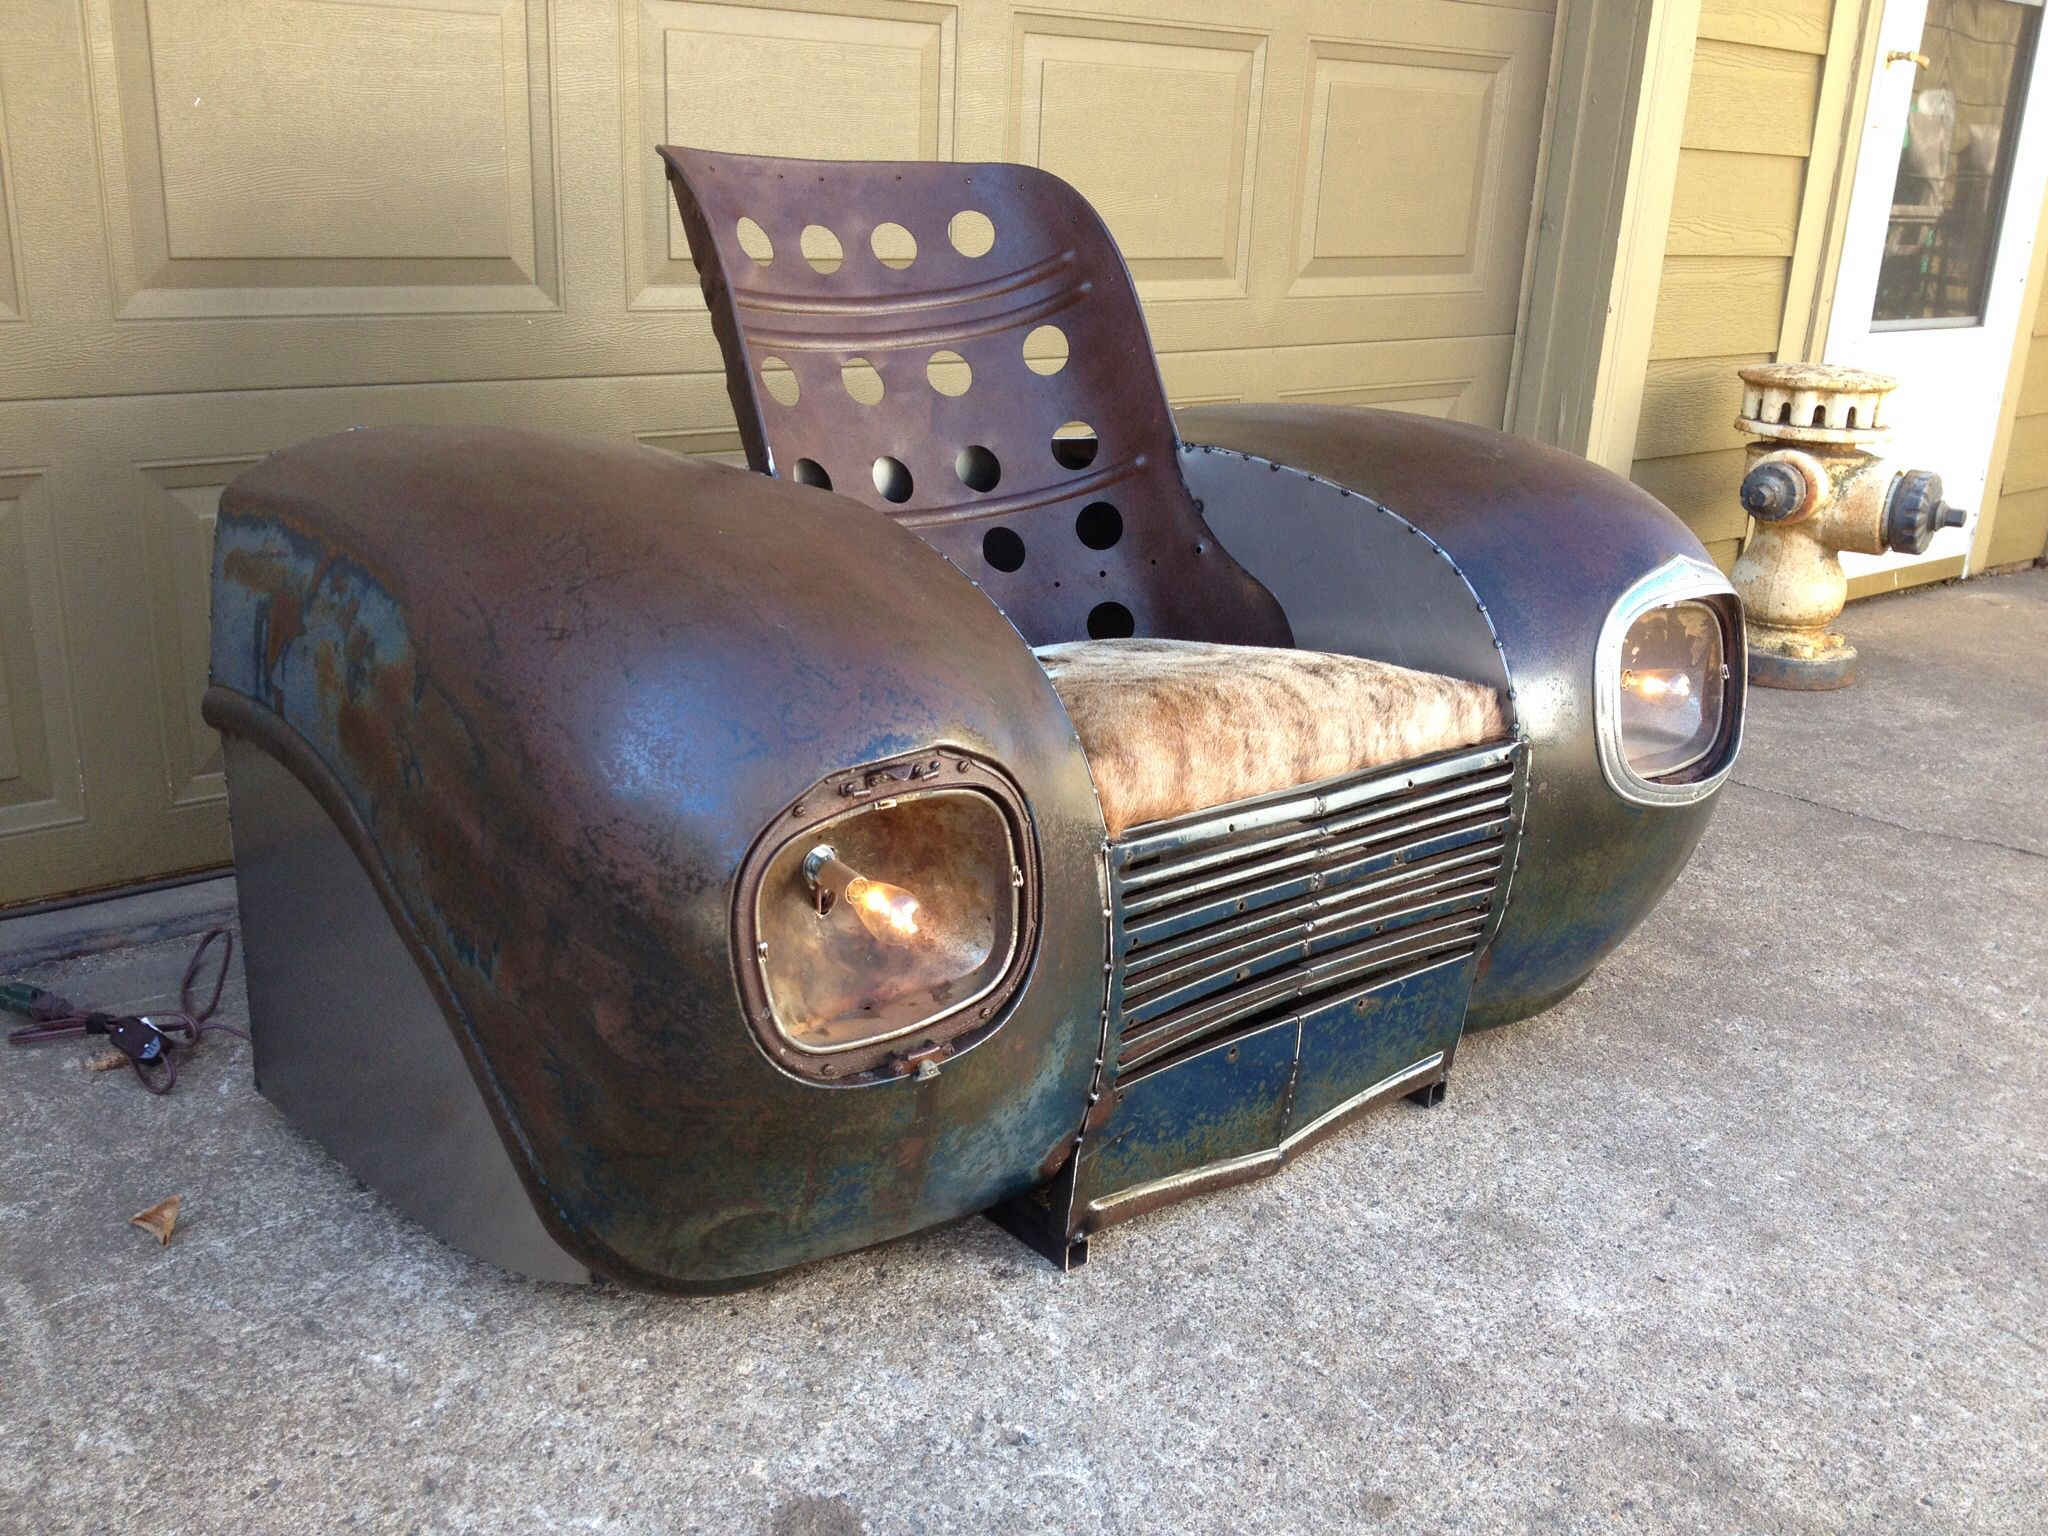 1939 plymouth fenders and grill with a ww2 bomber seat now for Furniture made from cars